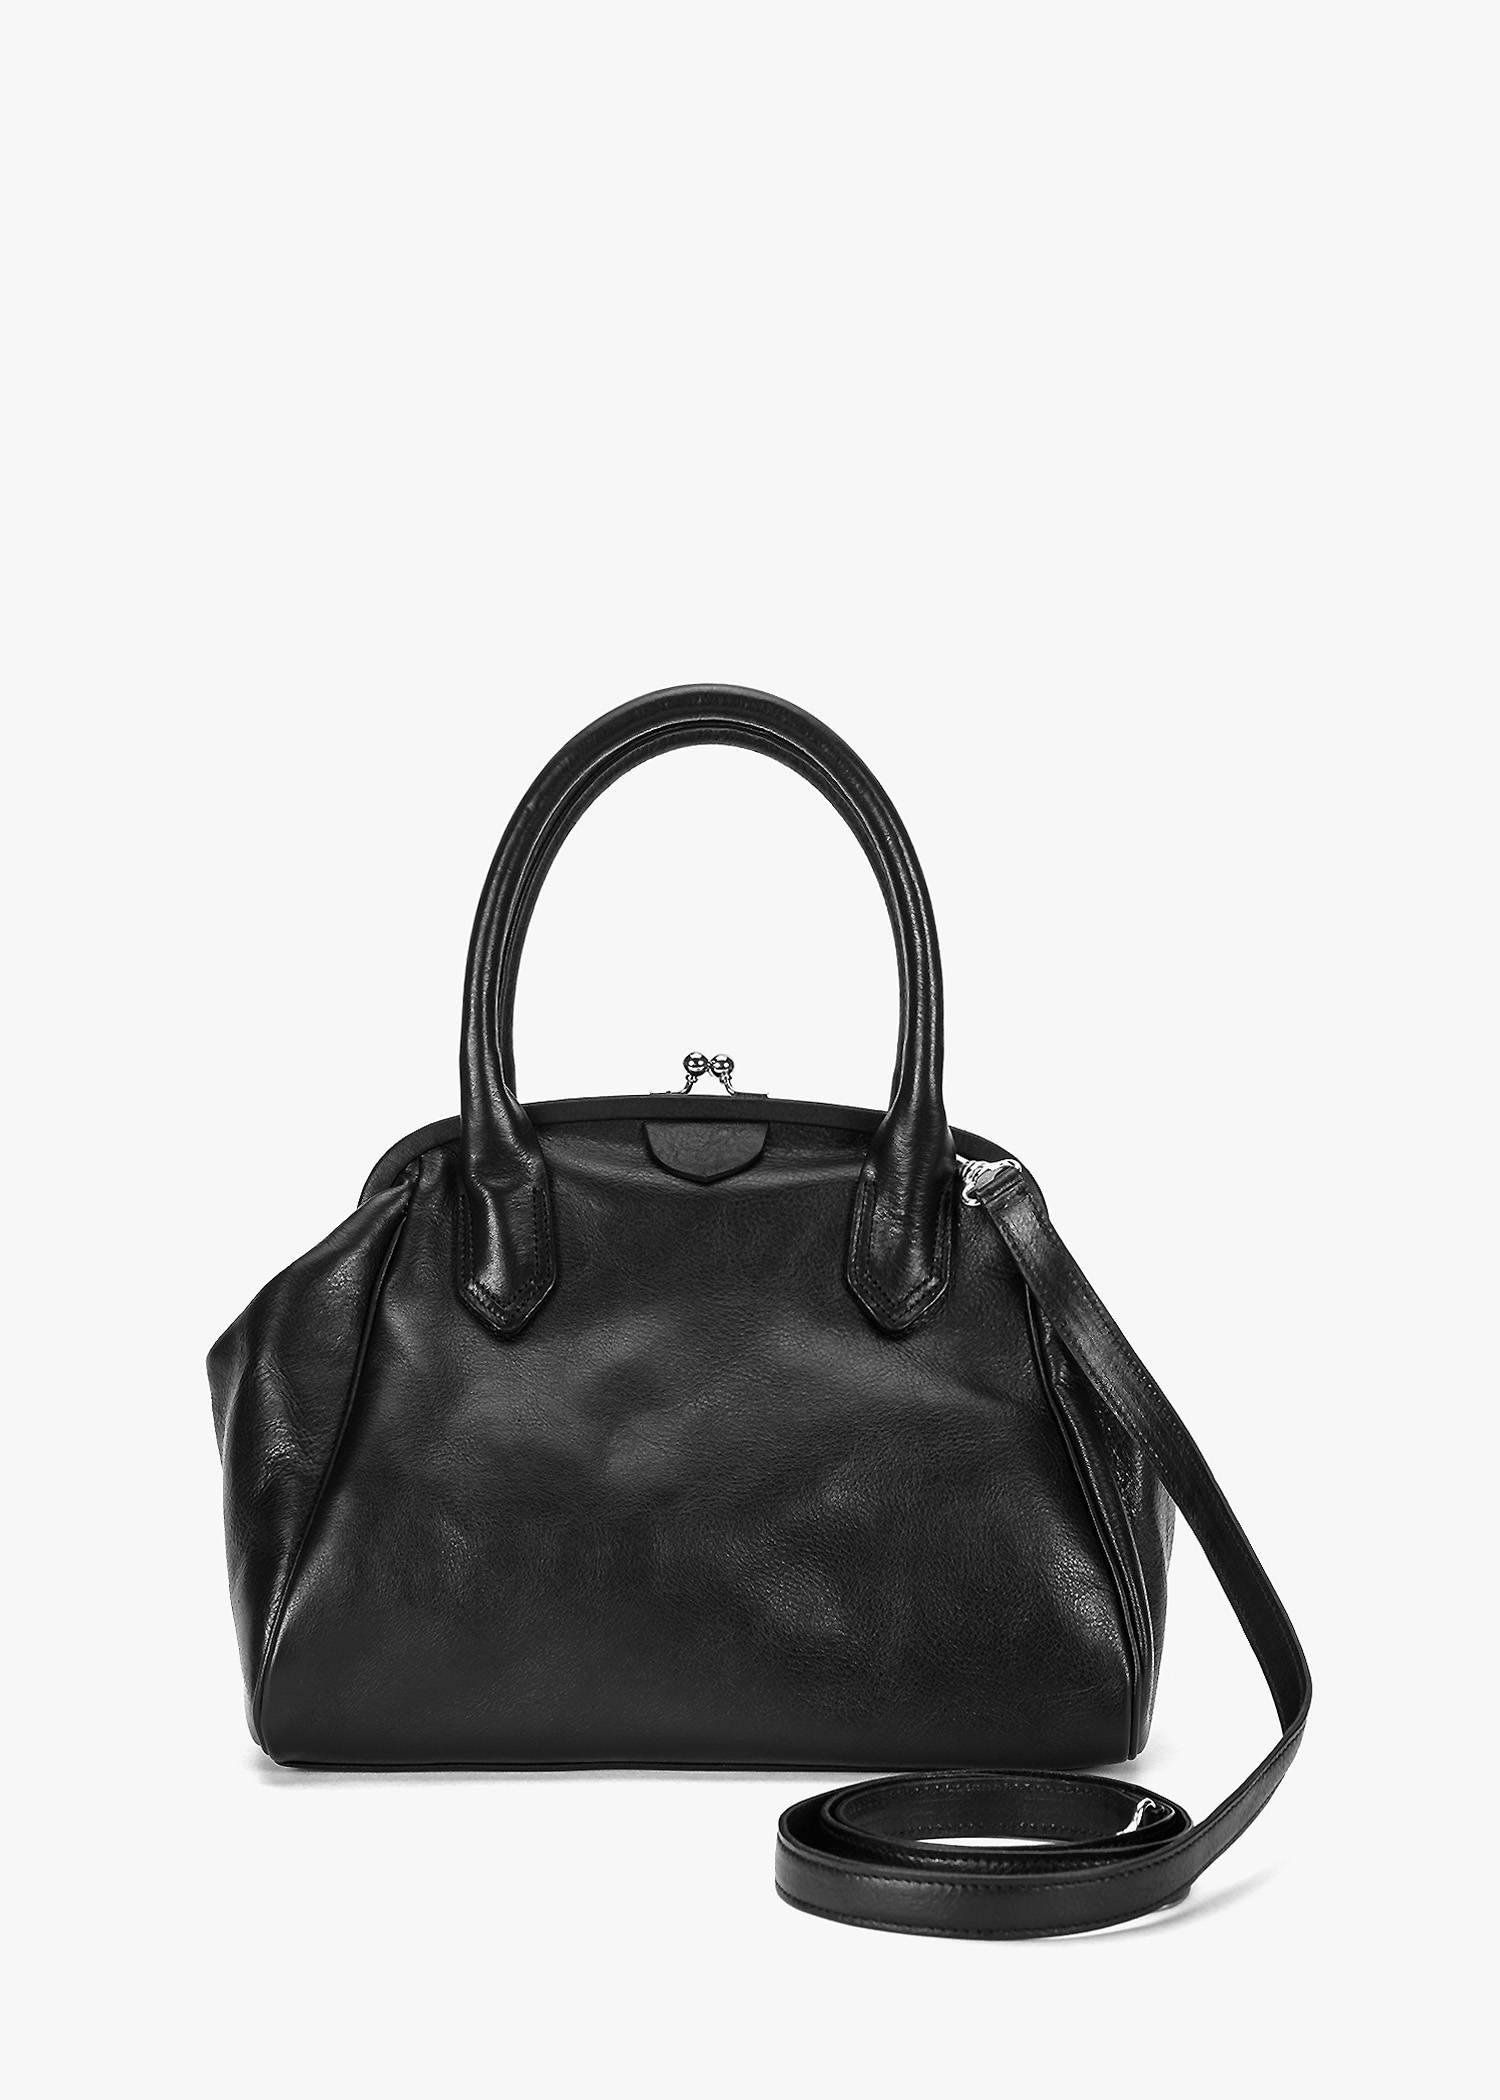 Y's Round Clasp Hand Bag In Black